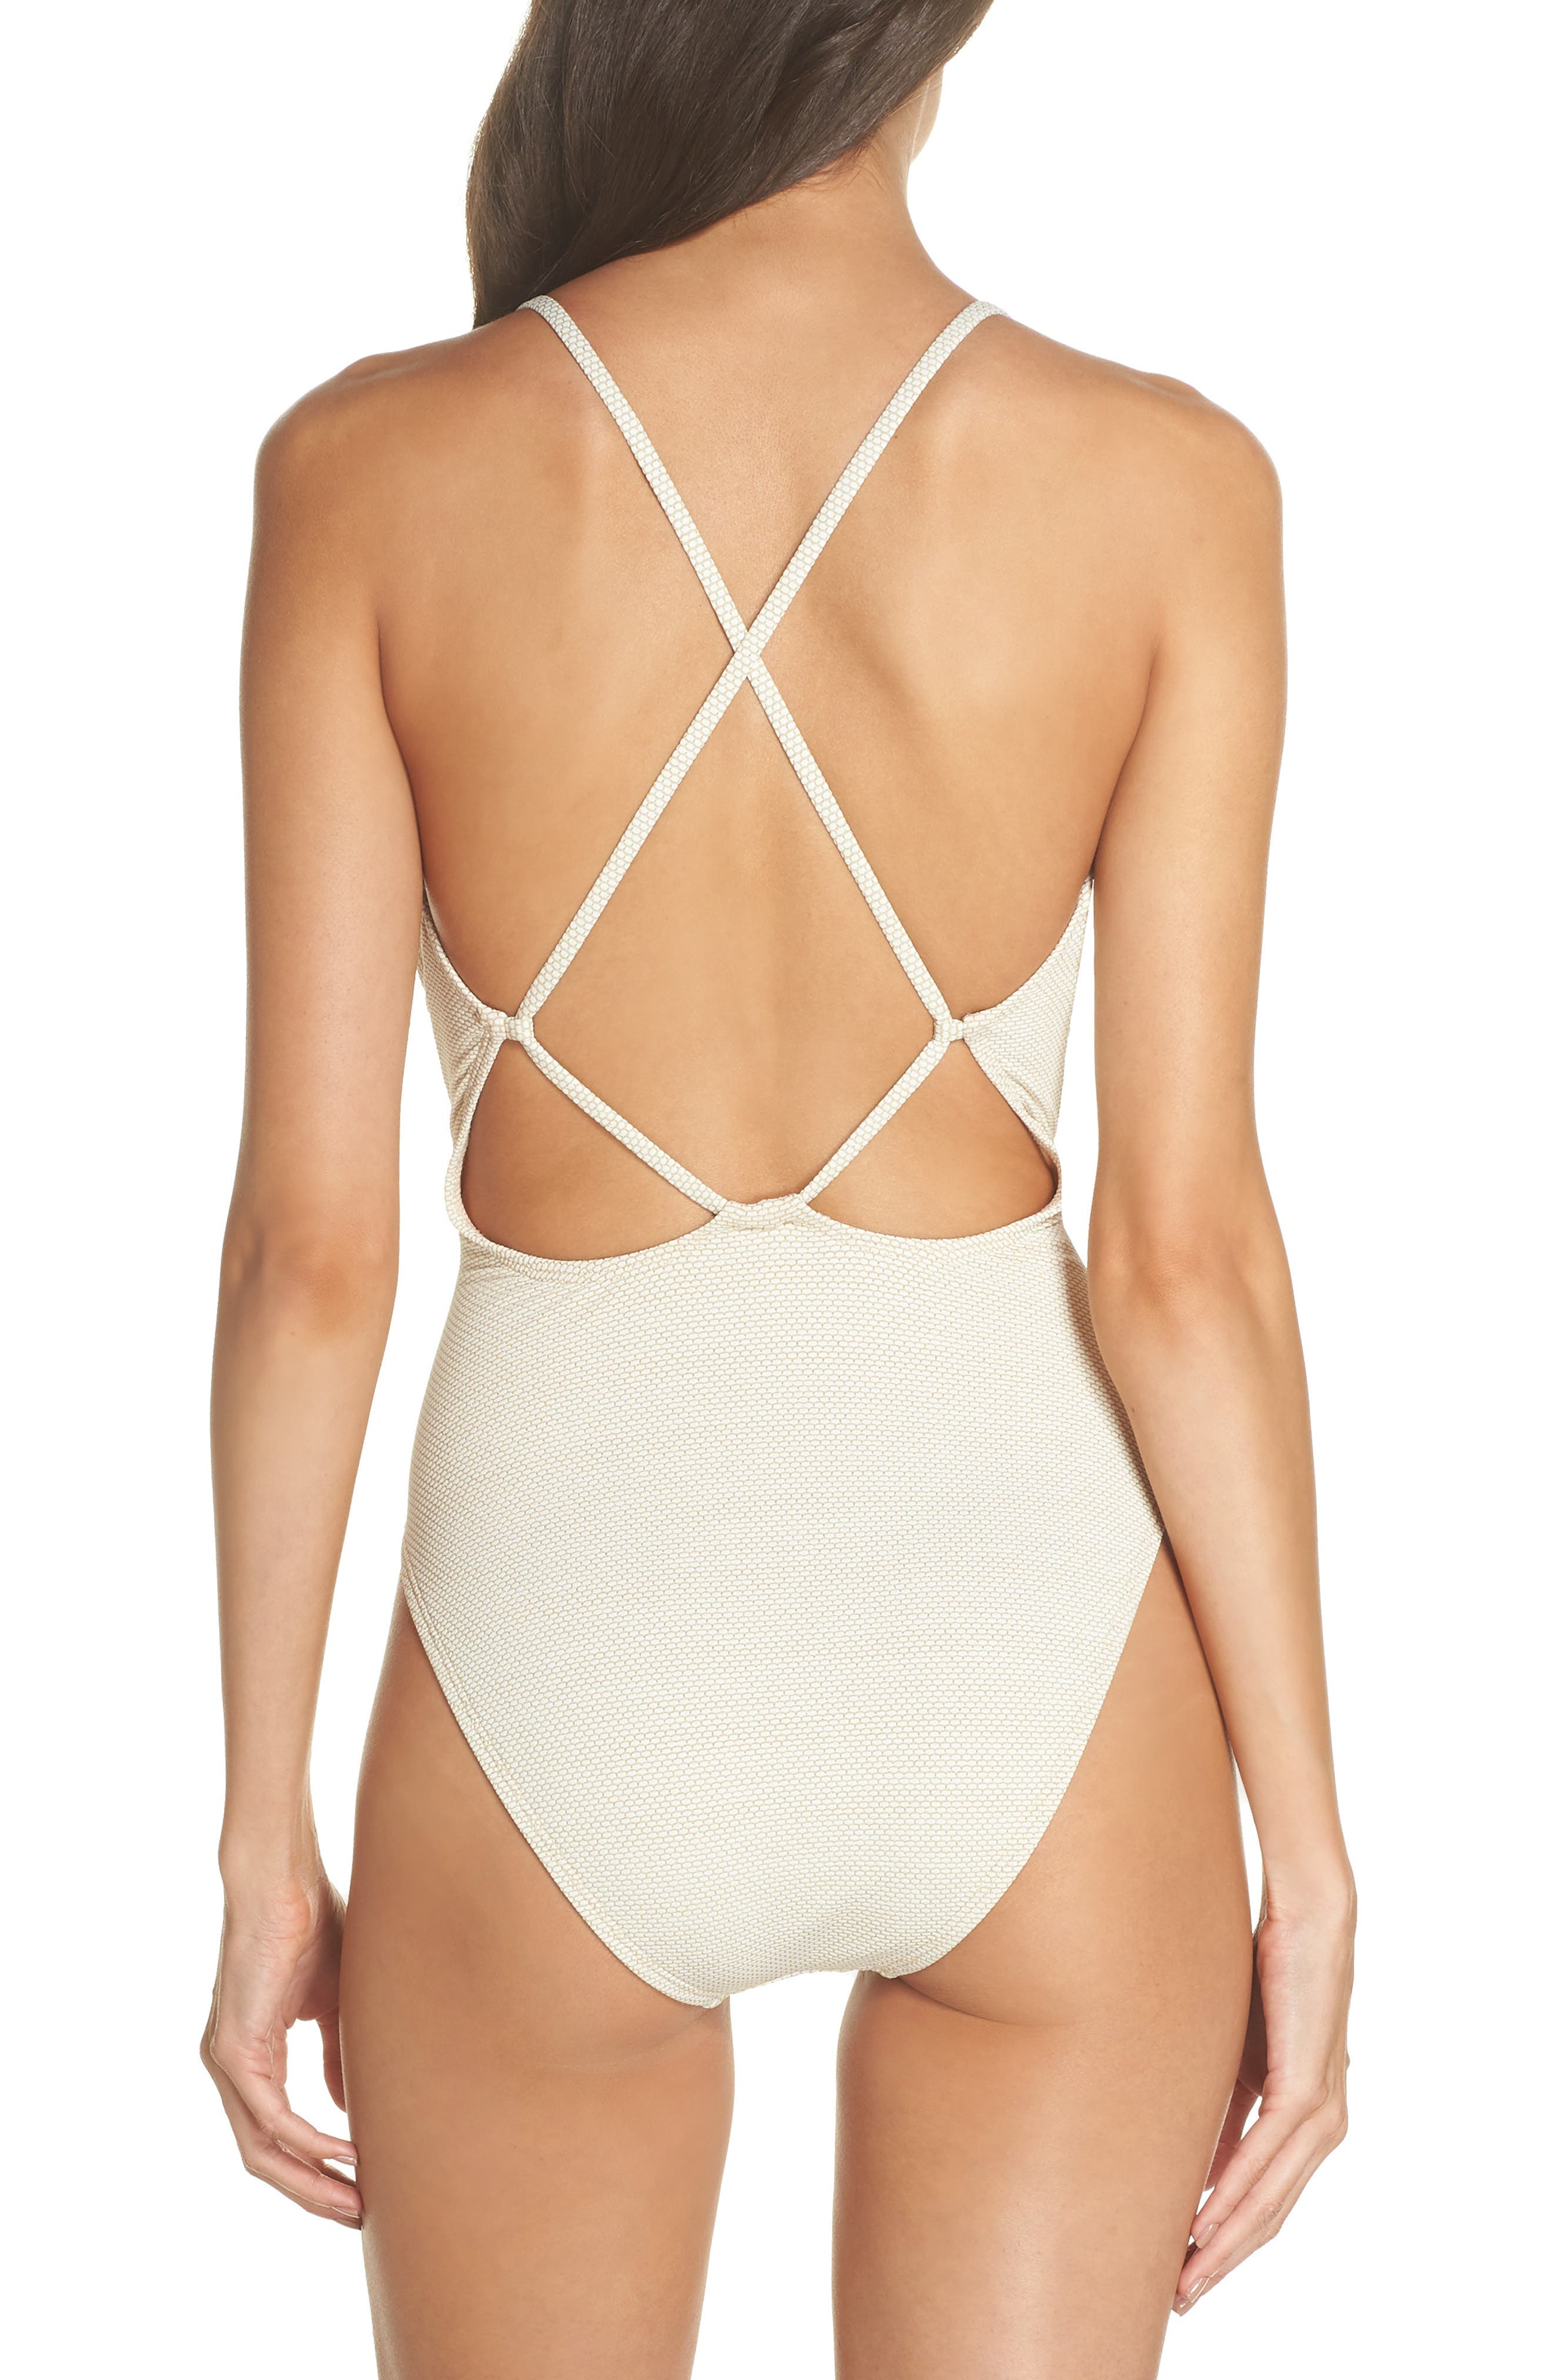 South Beach One-Piece Swimsuit,                             Alternate thumbnail 2, color,                             IVORY EGRET